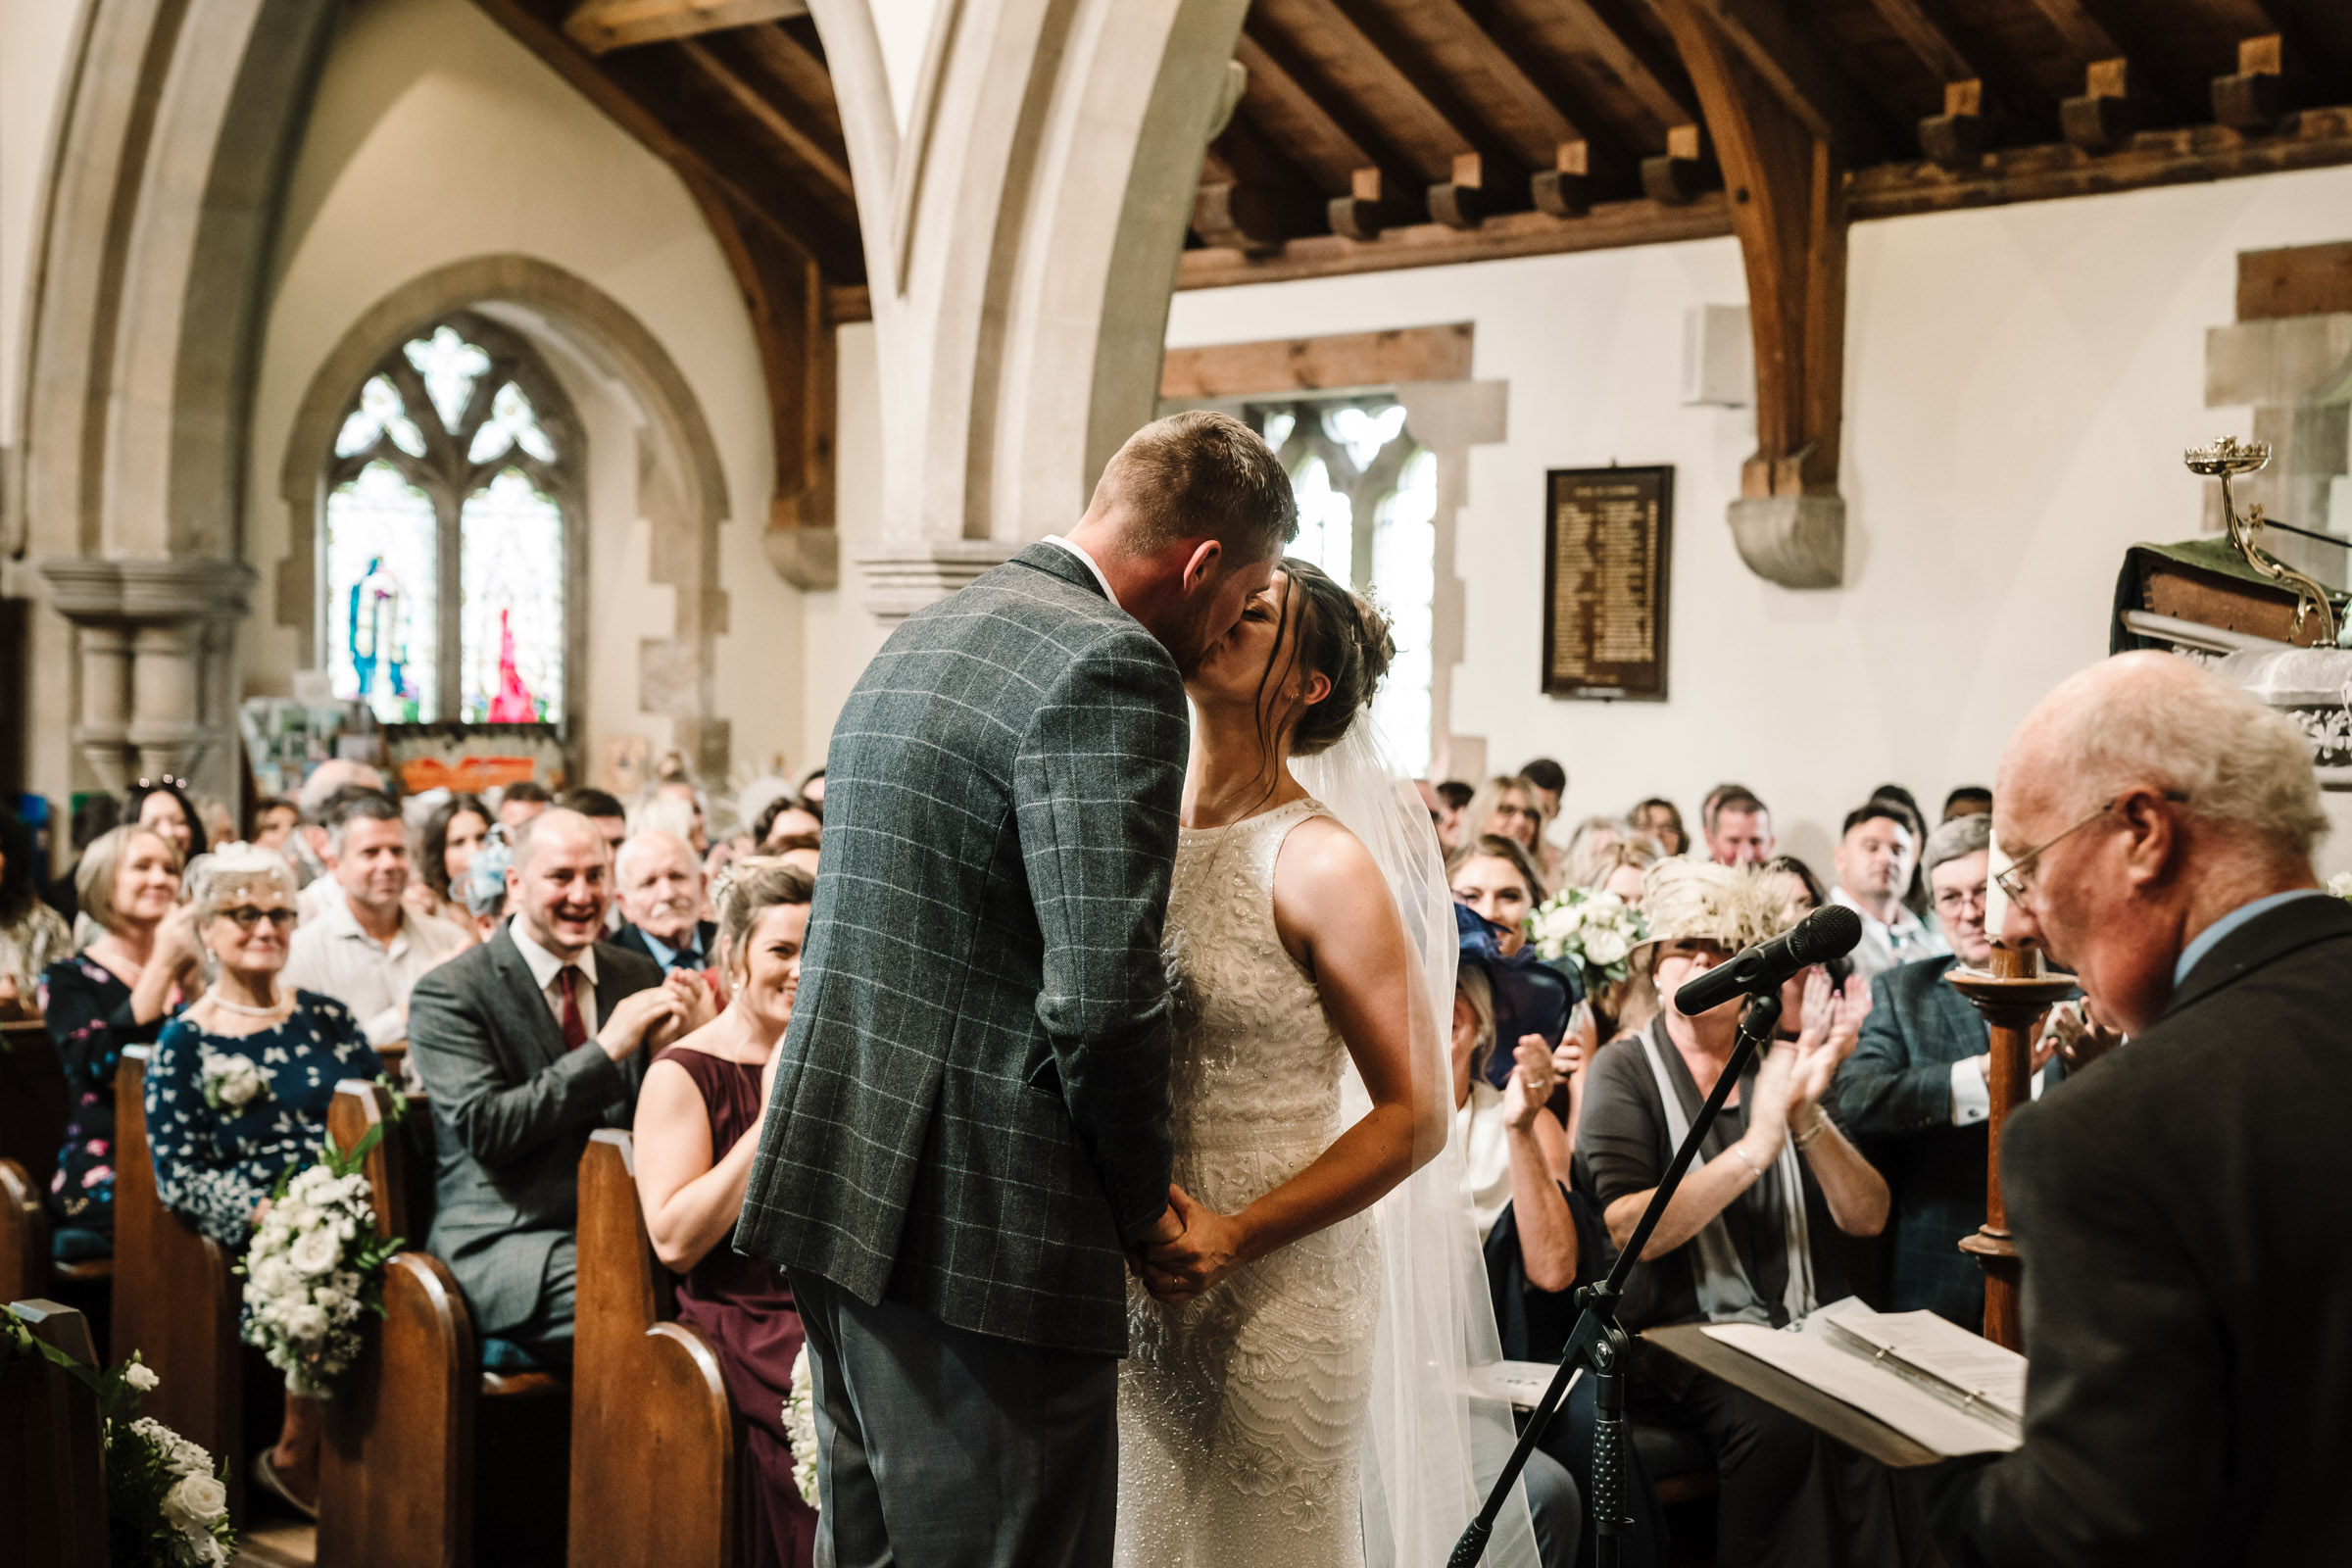 bride and groom first kiss as husband and wife, church wedding ceremony